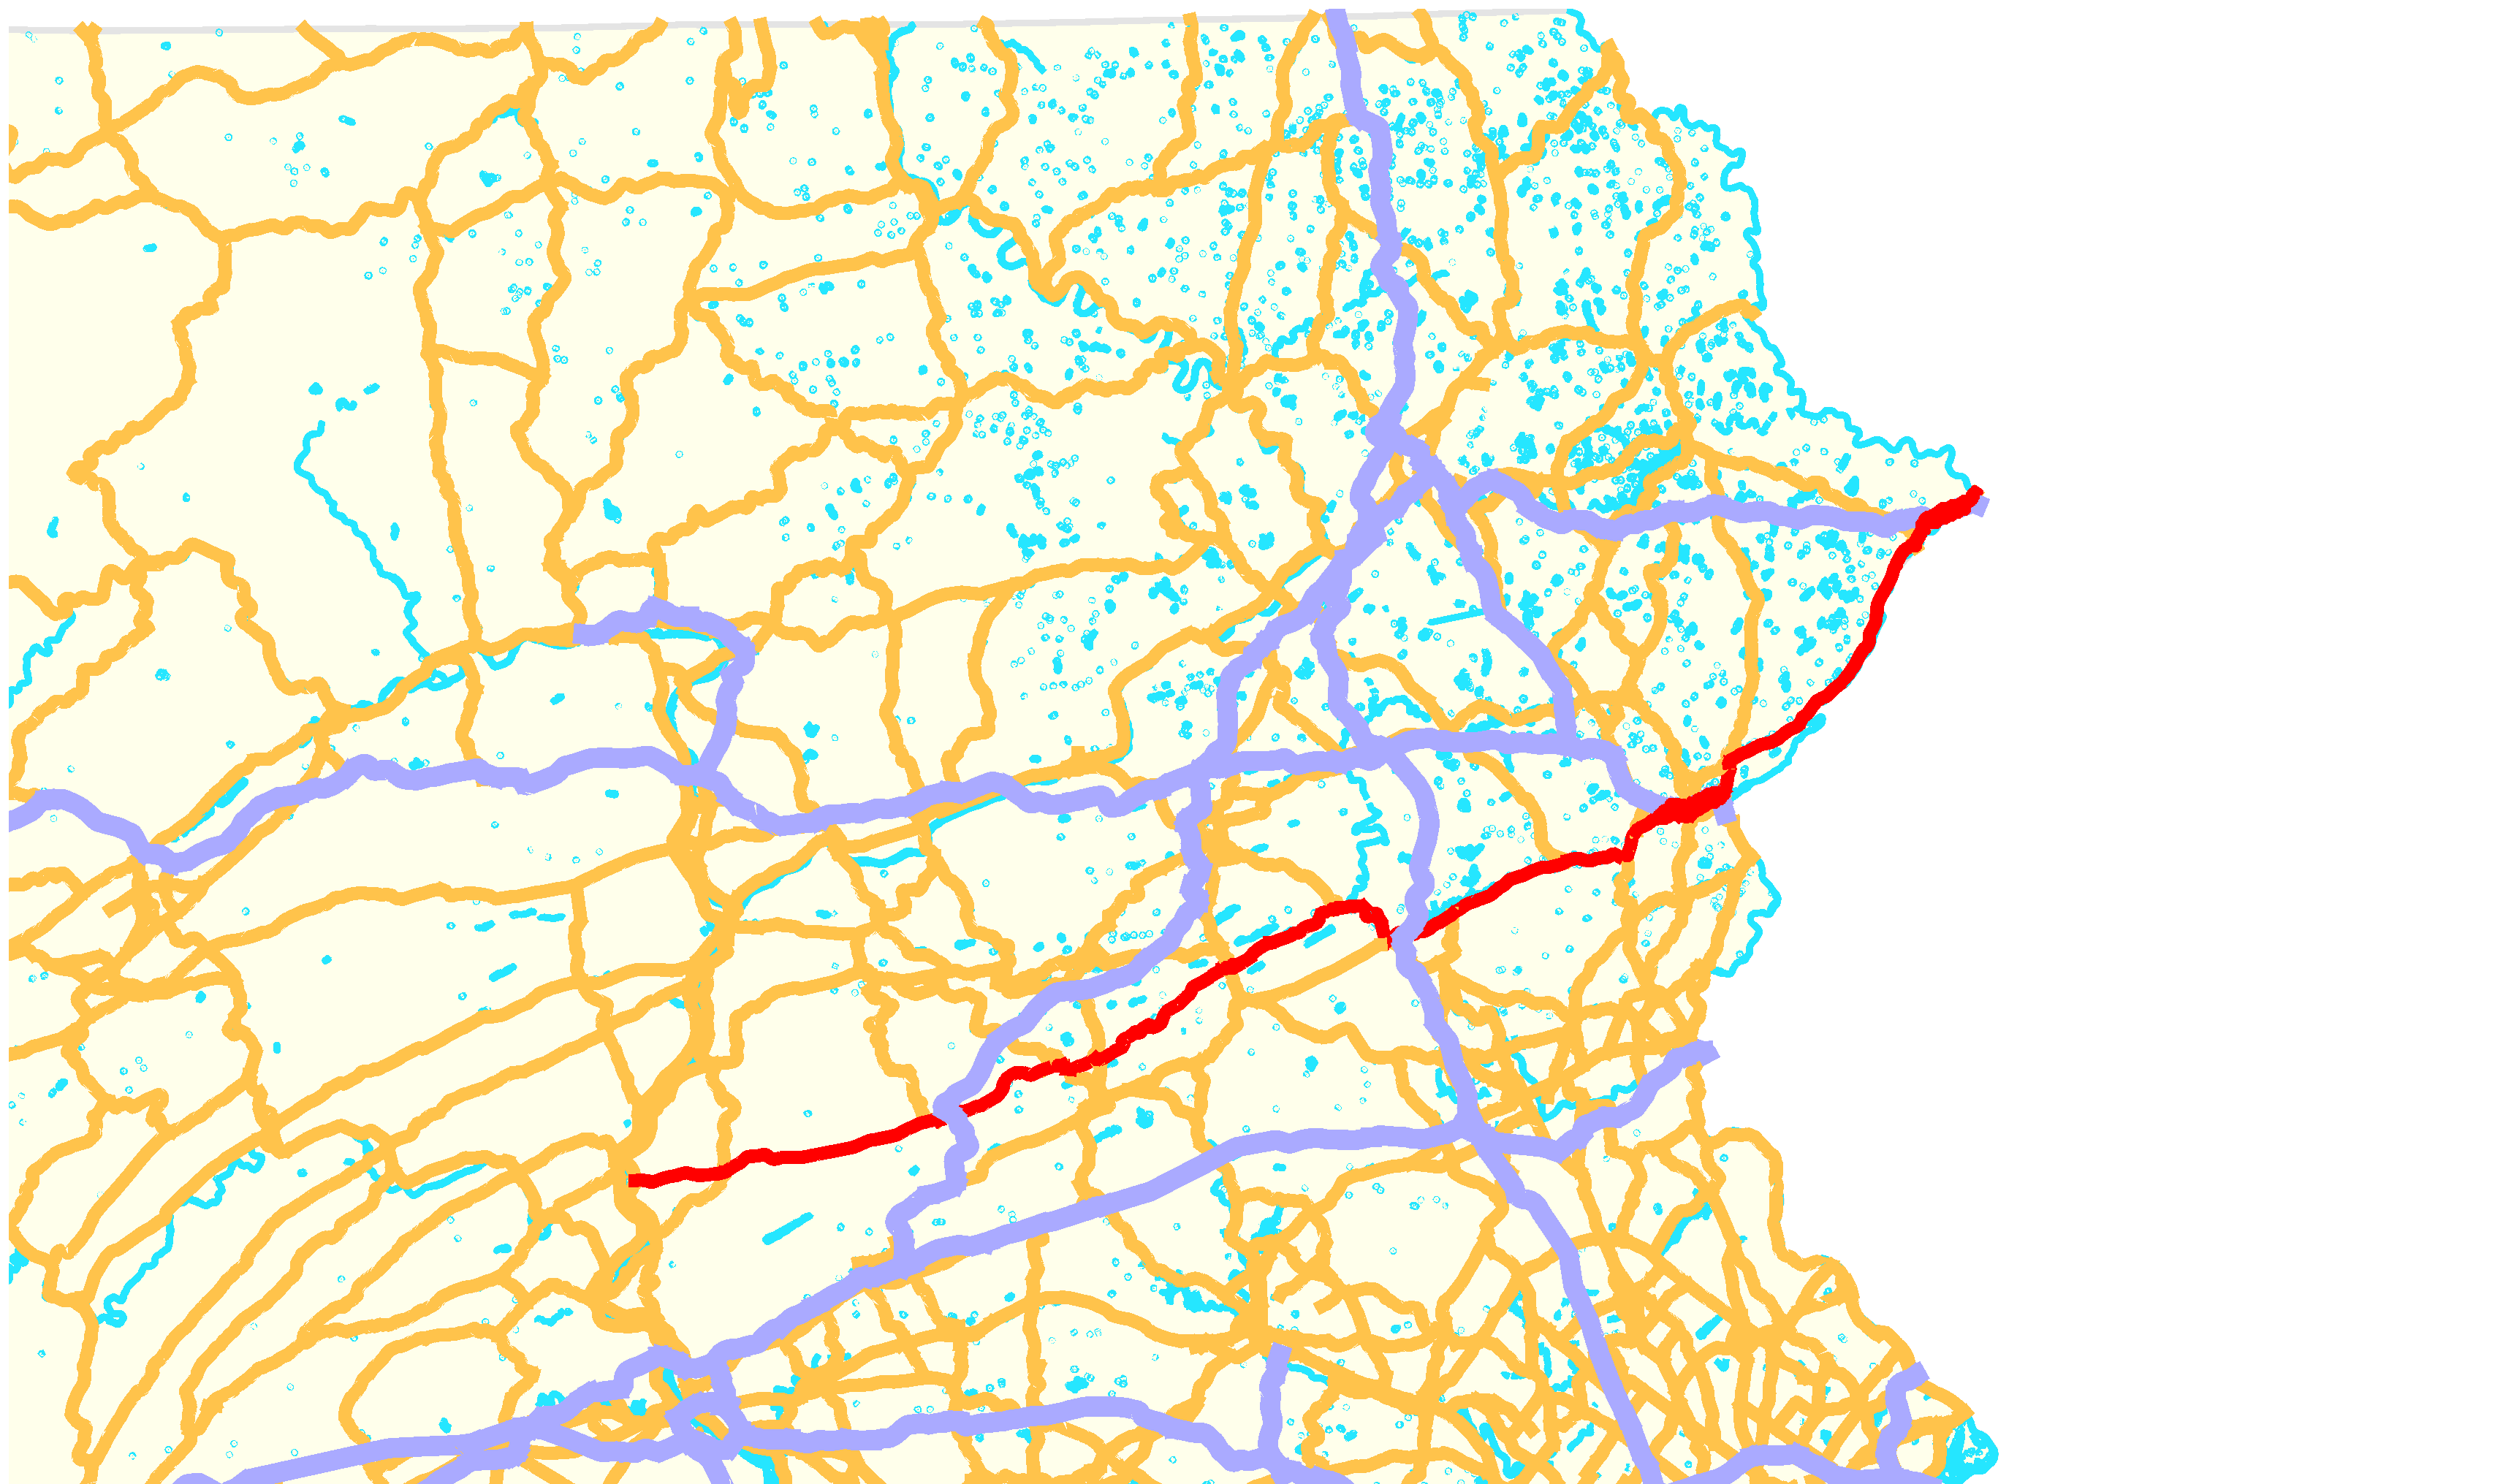 File:U.S. Route 209 (PA) map.png - Wikimedia Commons on route 11 pa map, route 33 pa map, route 220 pa map, route 611 pa map, route 100 pa map, route 83 pa map, route 309 pa map, route 29 pa map, route 82 pa map, route 51 pa map, route 15 pa map, route 23 pa map,